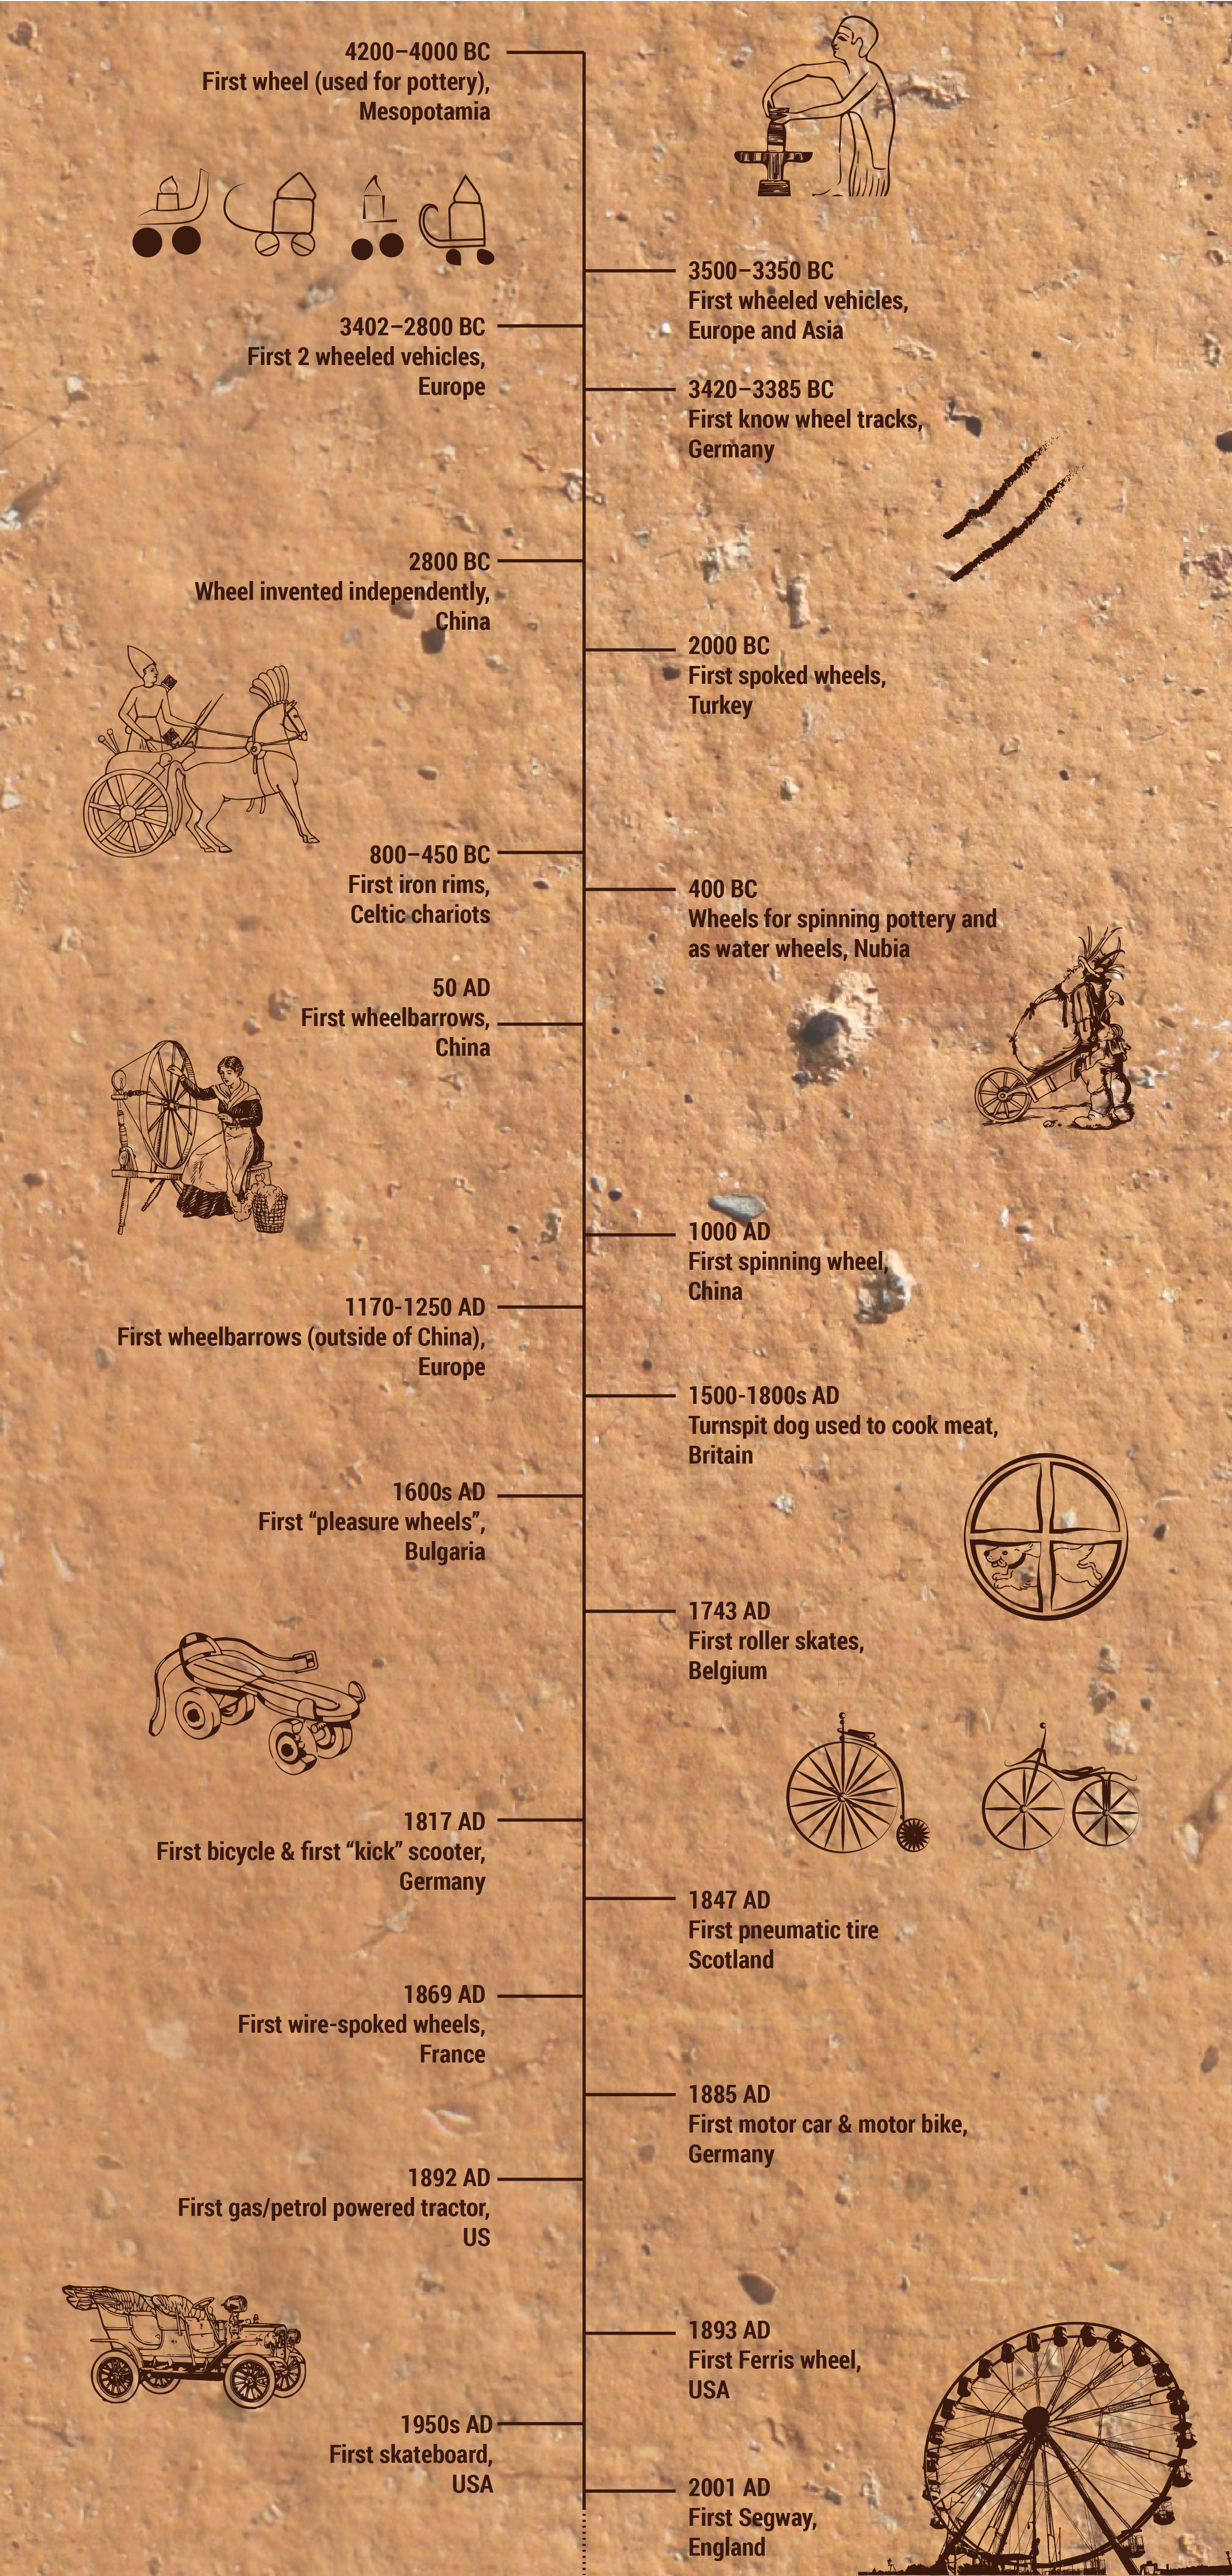 the history of the wheel time line who invented it when